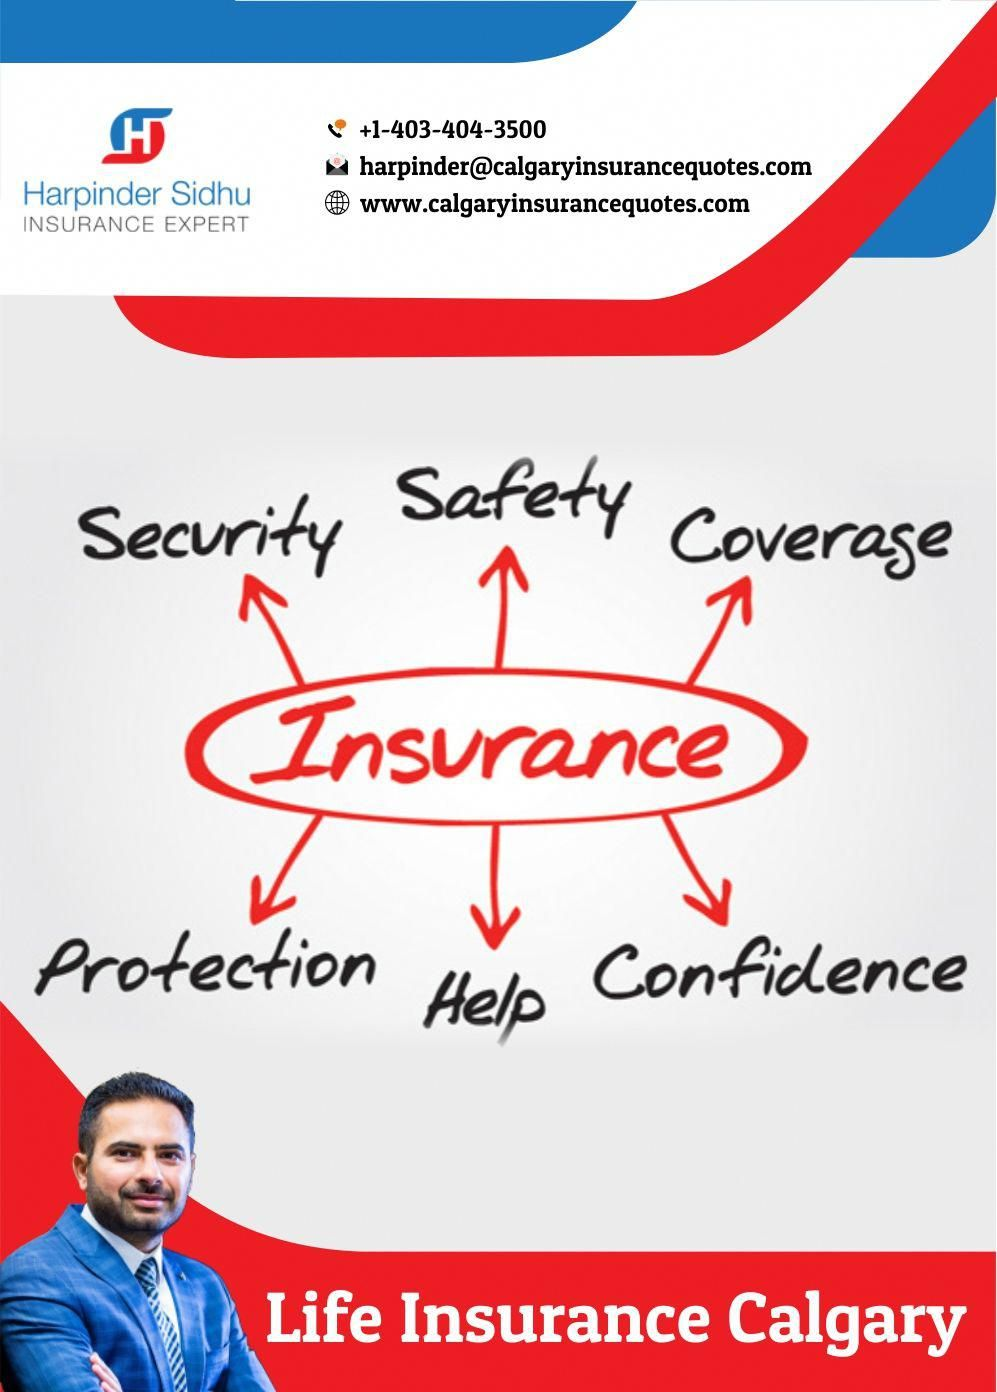 Calgary Insurance quotes are the Best and trusted